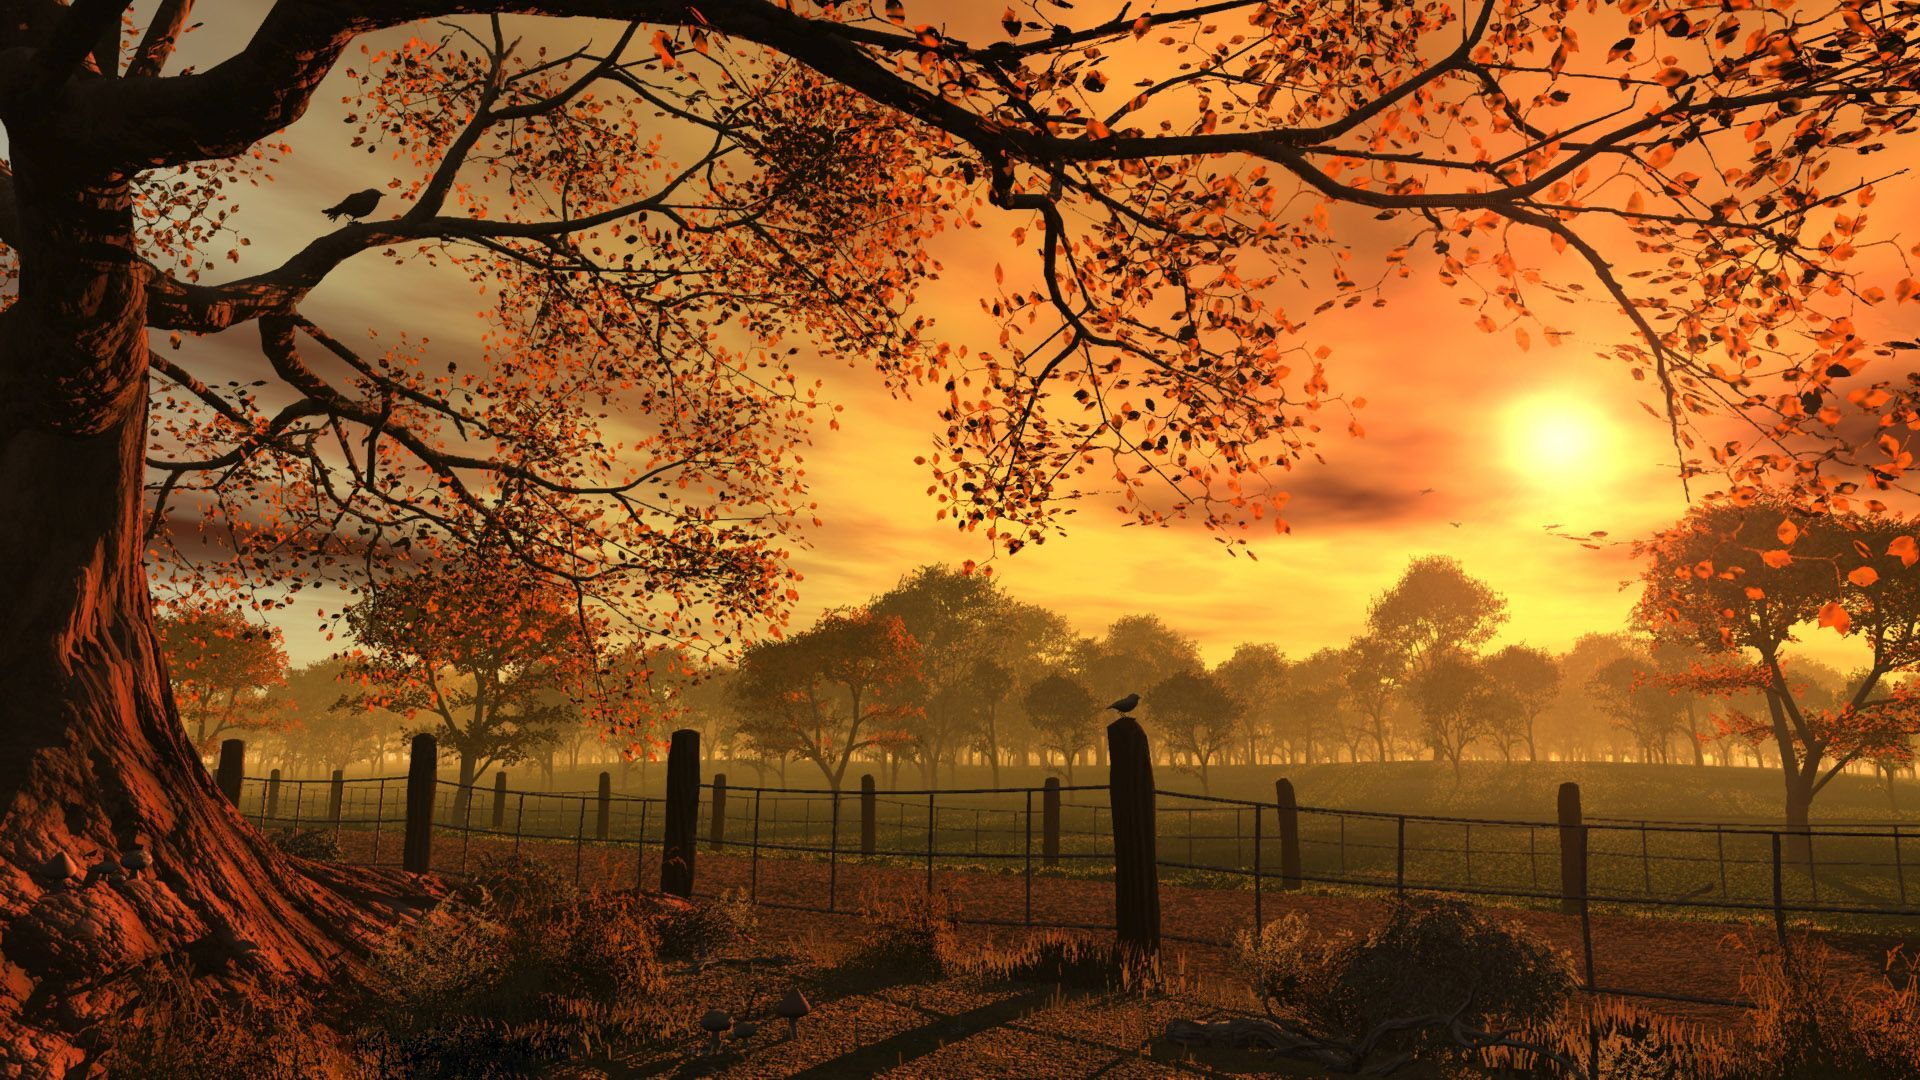 superb autumn sunset hd wallpaper | hd latest wallpapers